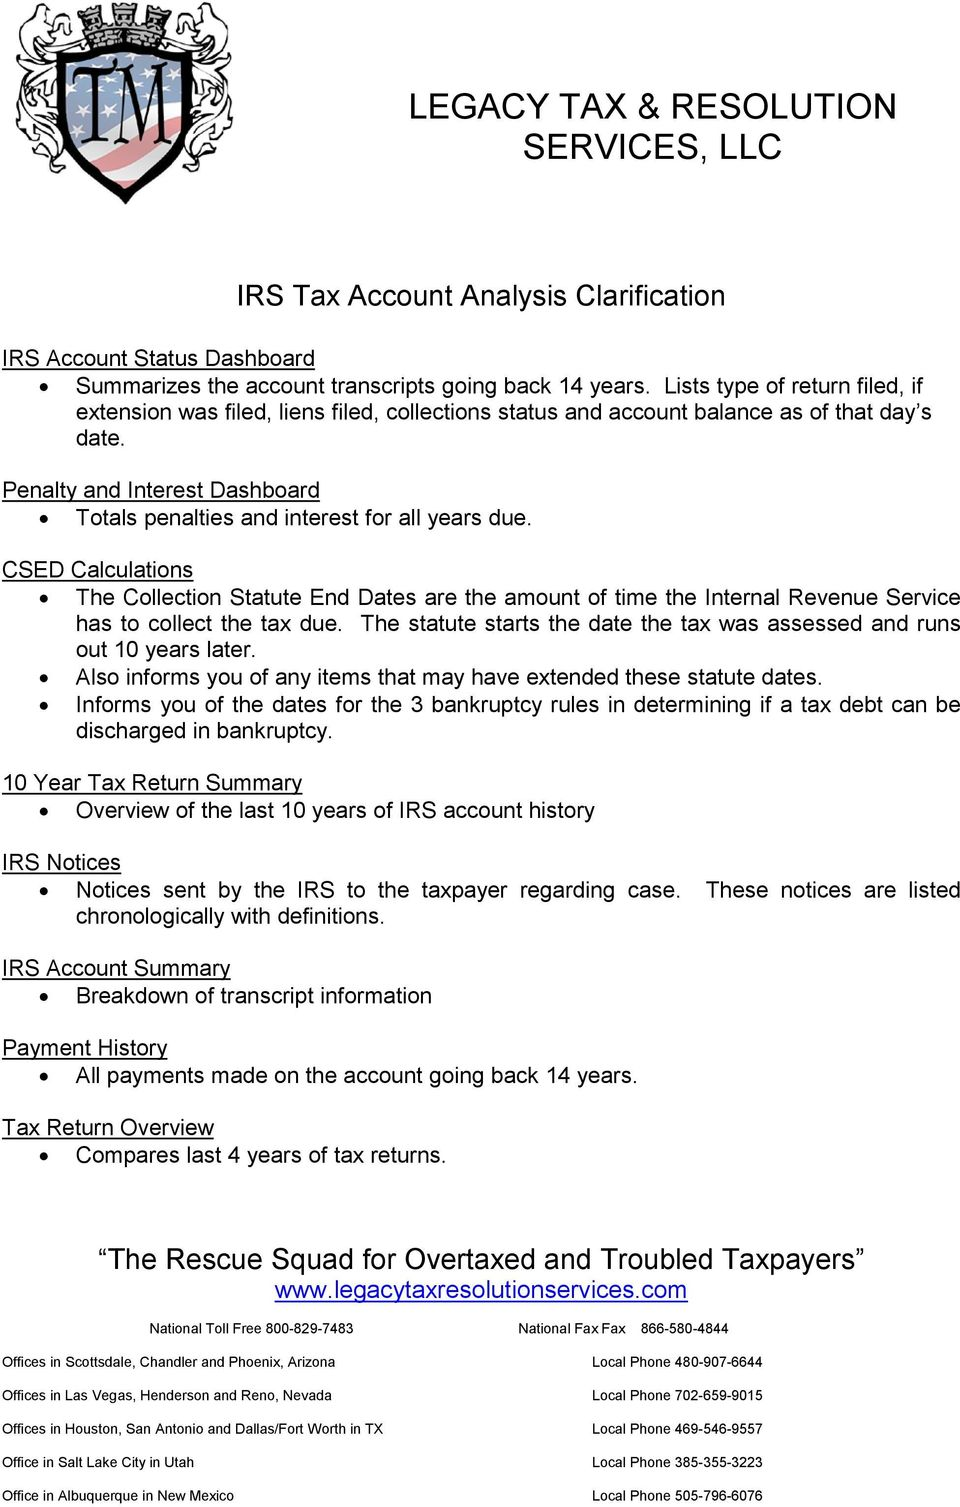 IRS Tax Account Analysis. Legacy Tax & Resolution Services, LLC Fax ...